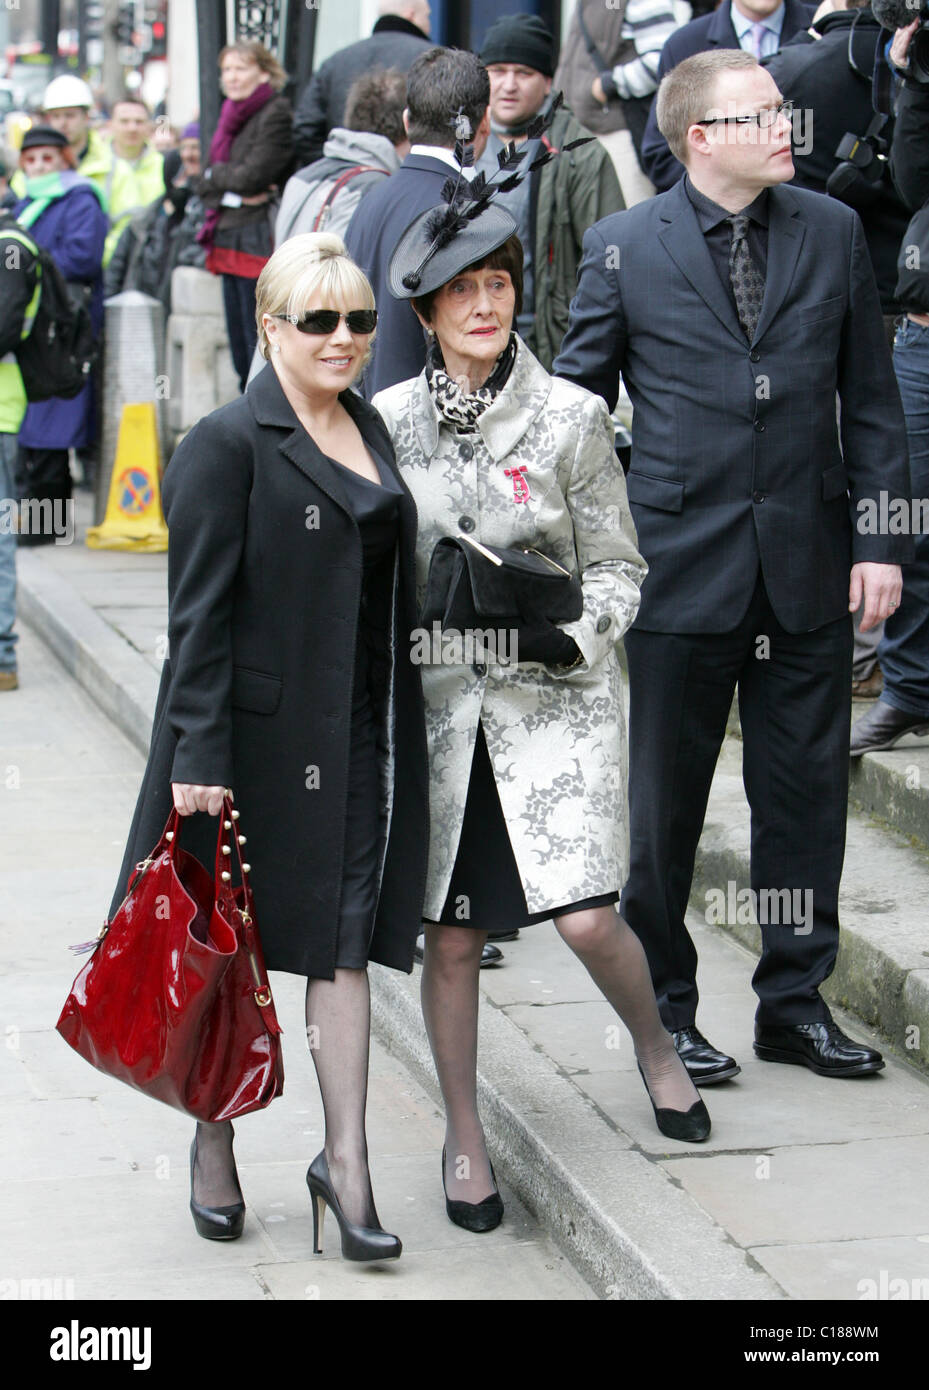 Wendy Richard Funeral